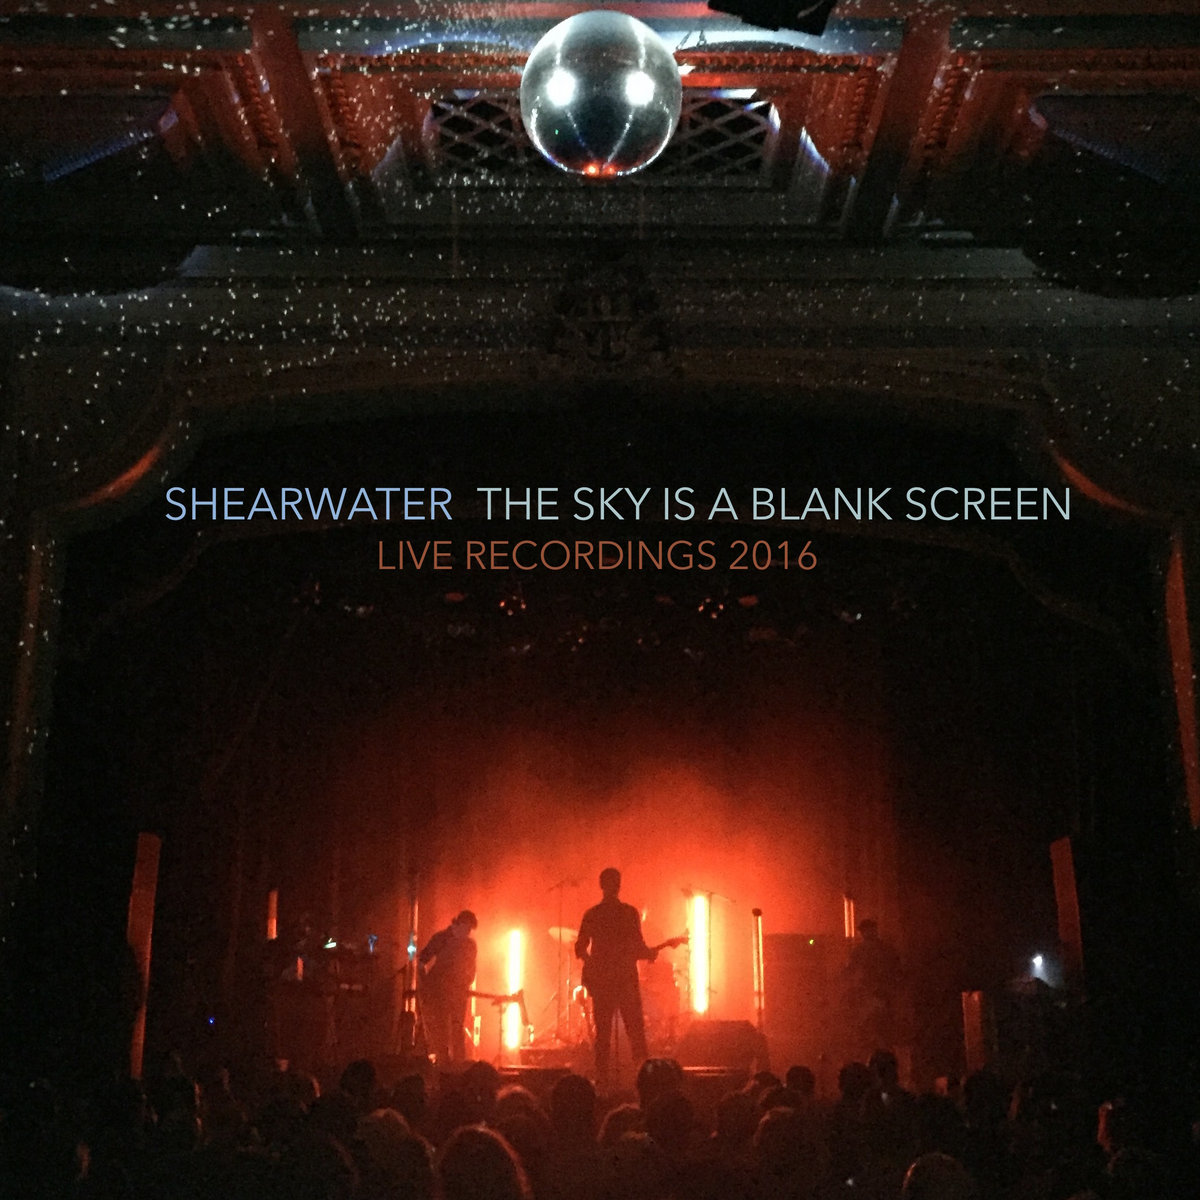 the sky is a blank screen live recordings 2016 shearwater